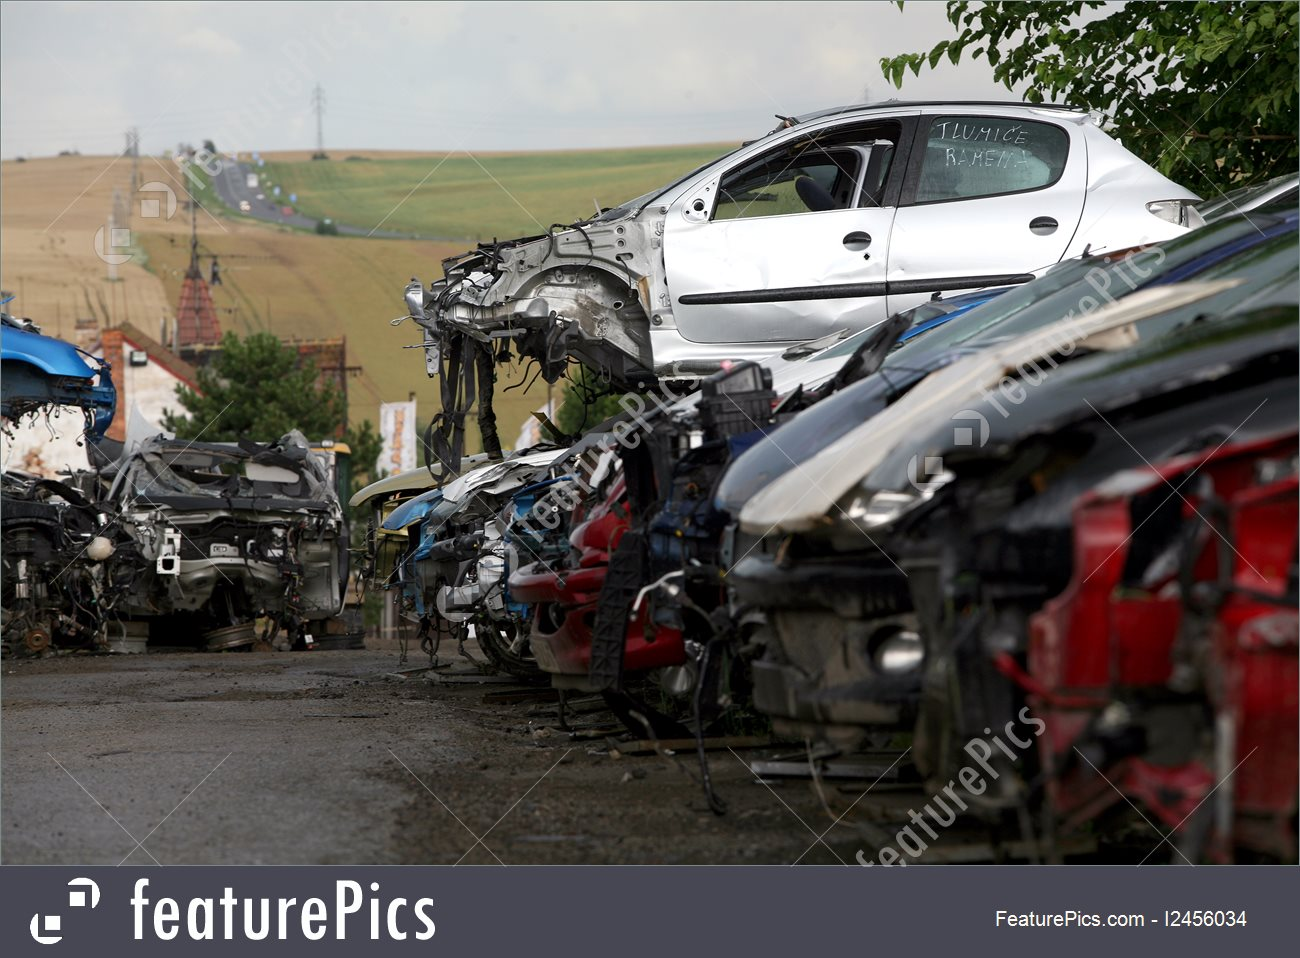 Car Cemetery With Many Broken Cars Image.